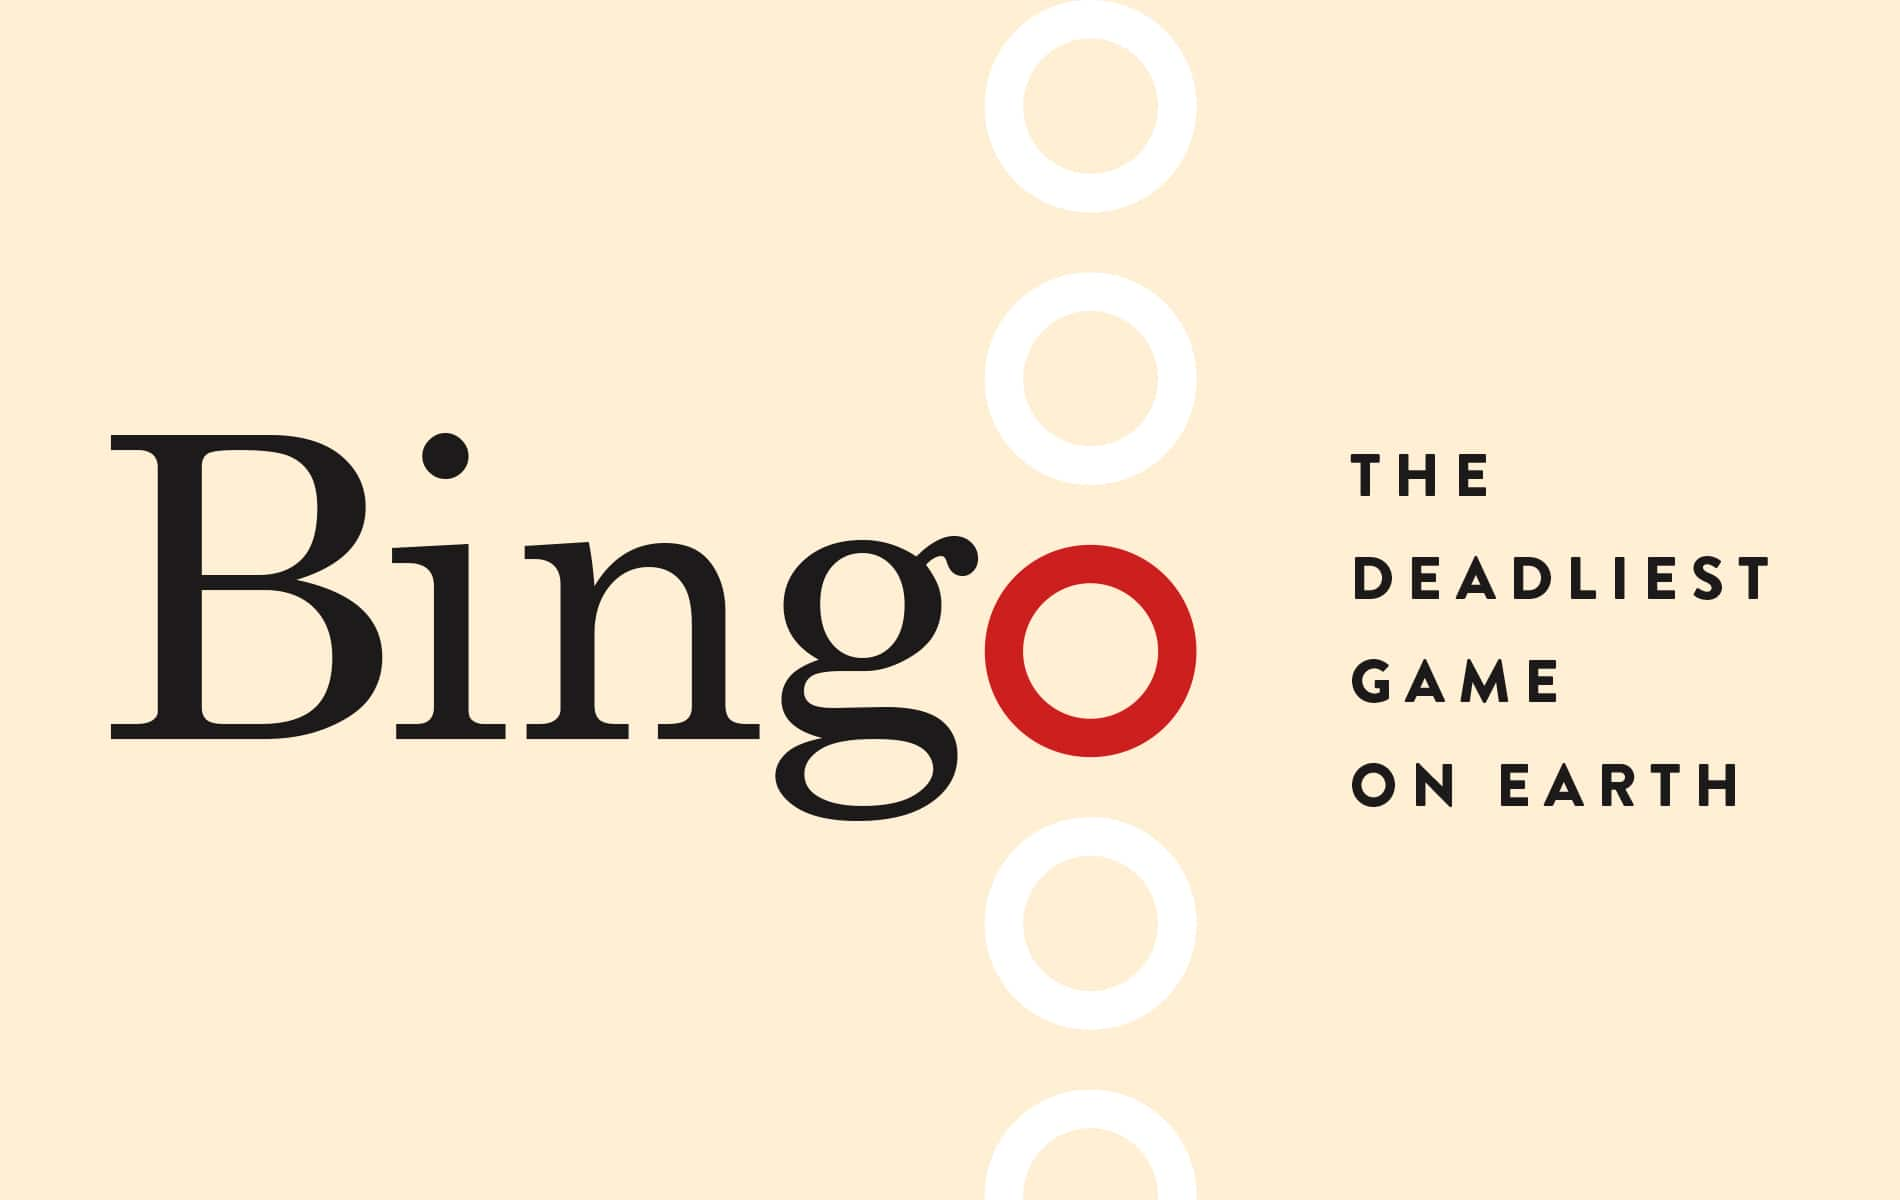 Bingo The Deadliest Game on Earth Greg Cayea Humor Illustration